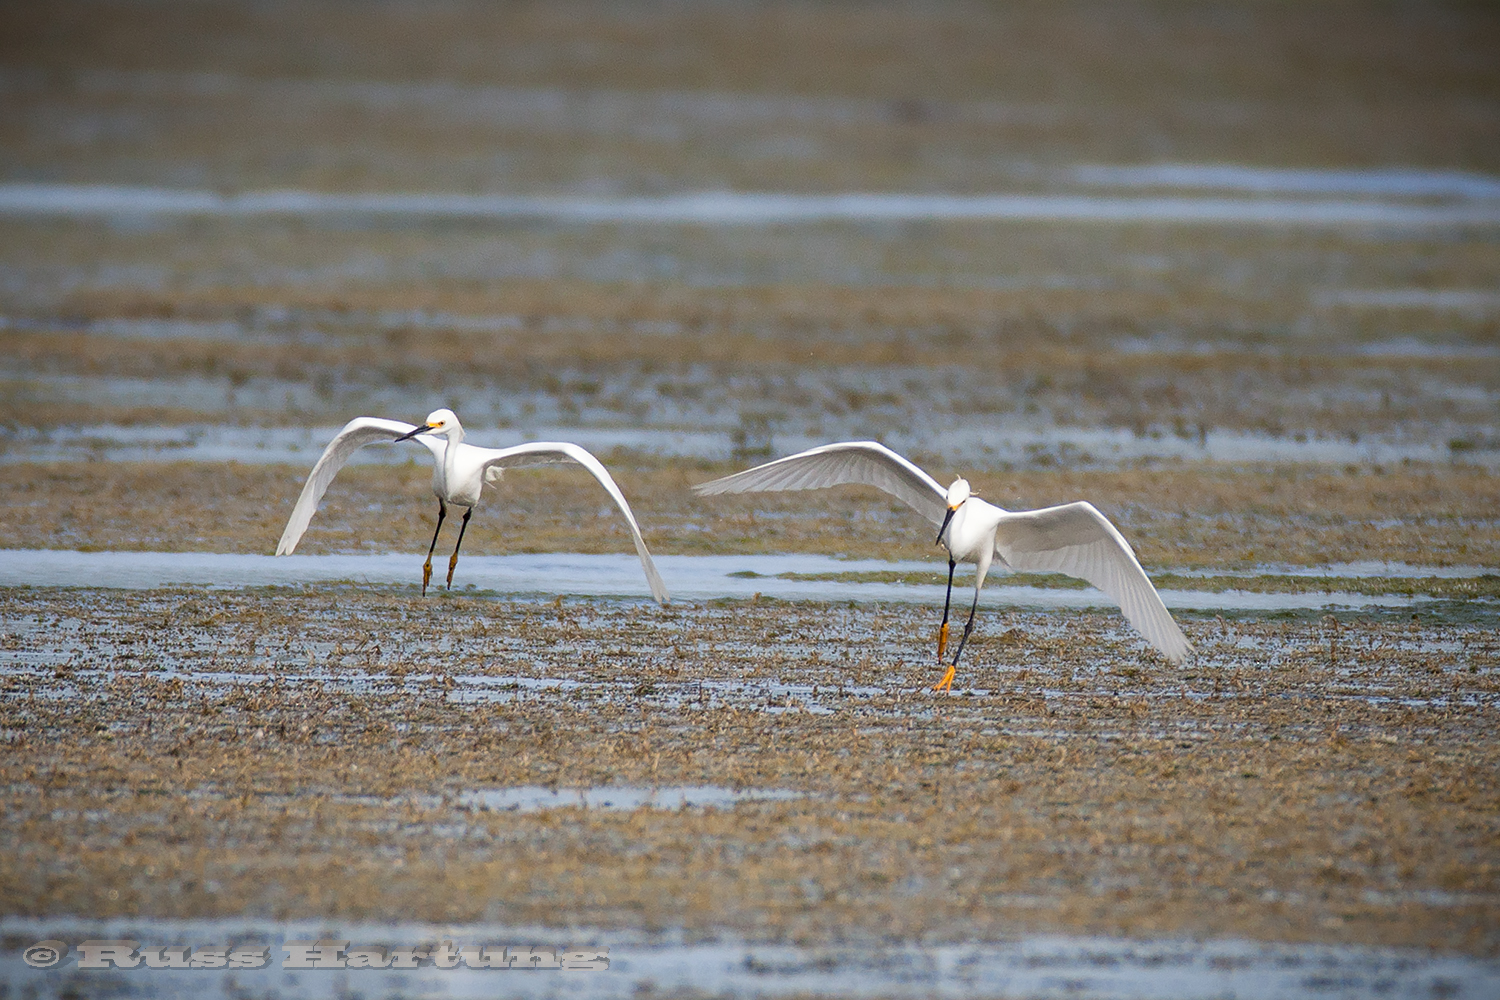 These two snowy egrets look like they're dancing as they look for fish.